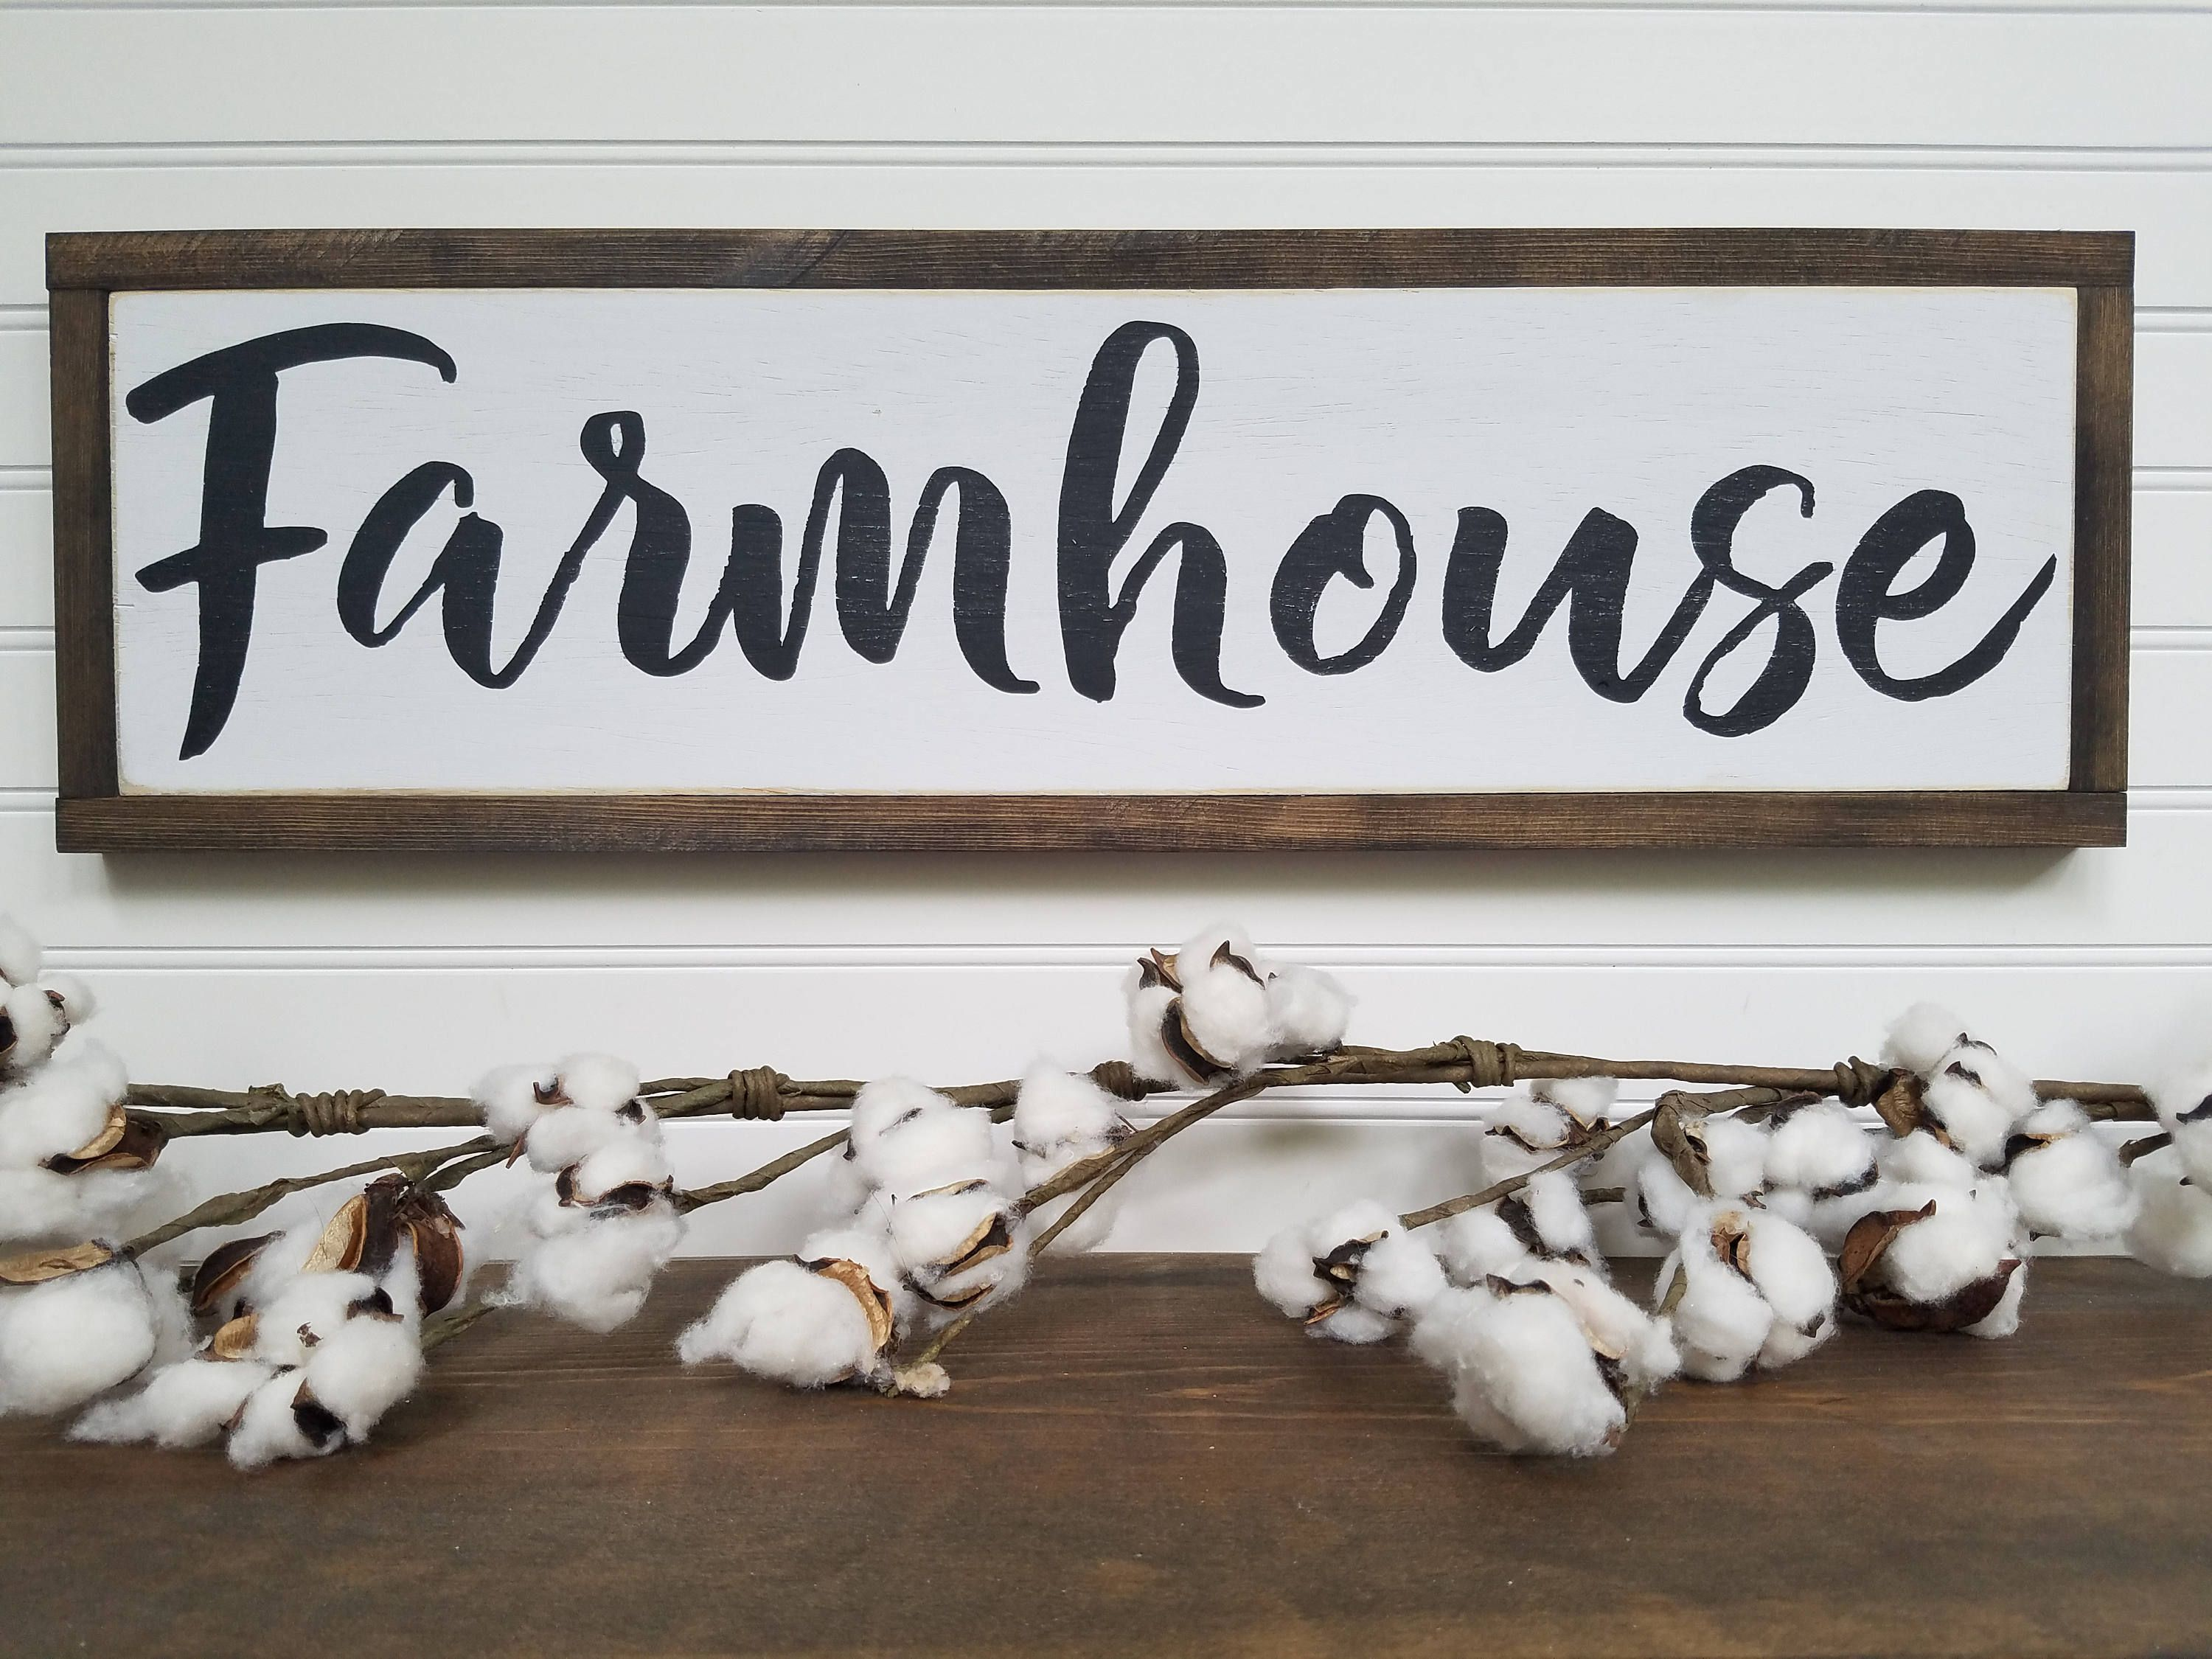 Farmhouse Sign Farmhouse Wood Signs Wooden Signs Farmhouse Signs Rustic Signs Farmhouse Decor By Wooden Signs Diy Wooden Signs Custom Wooden Signs